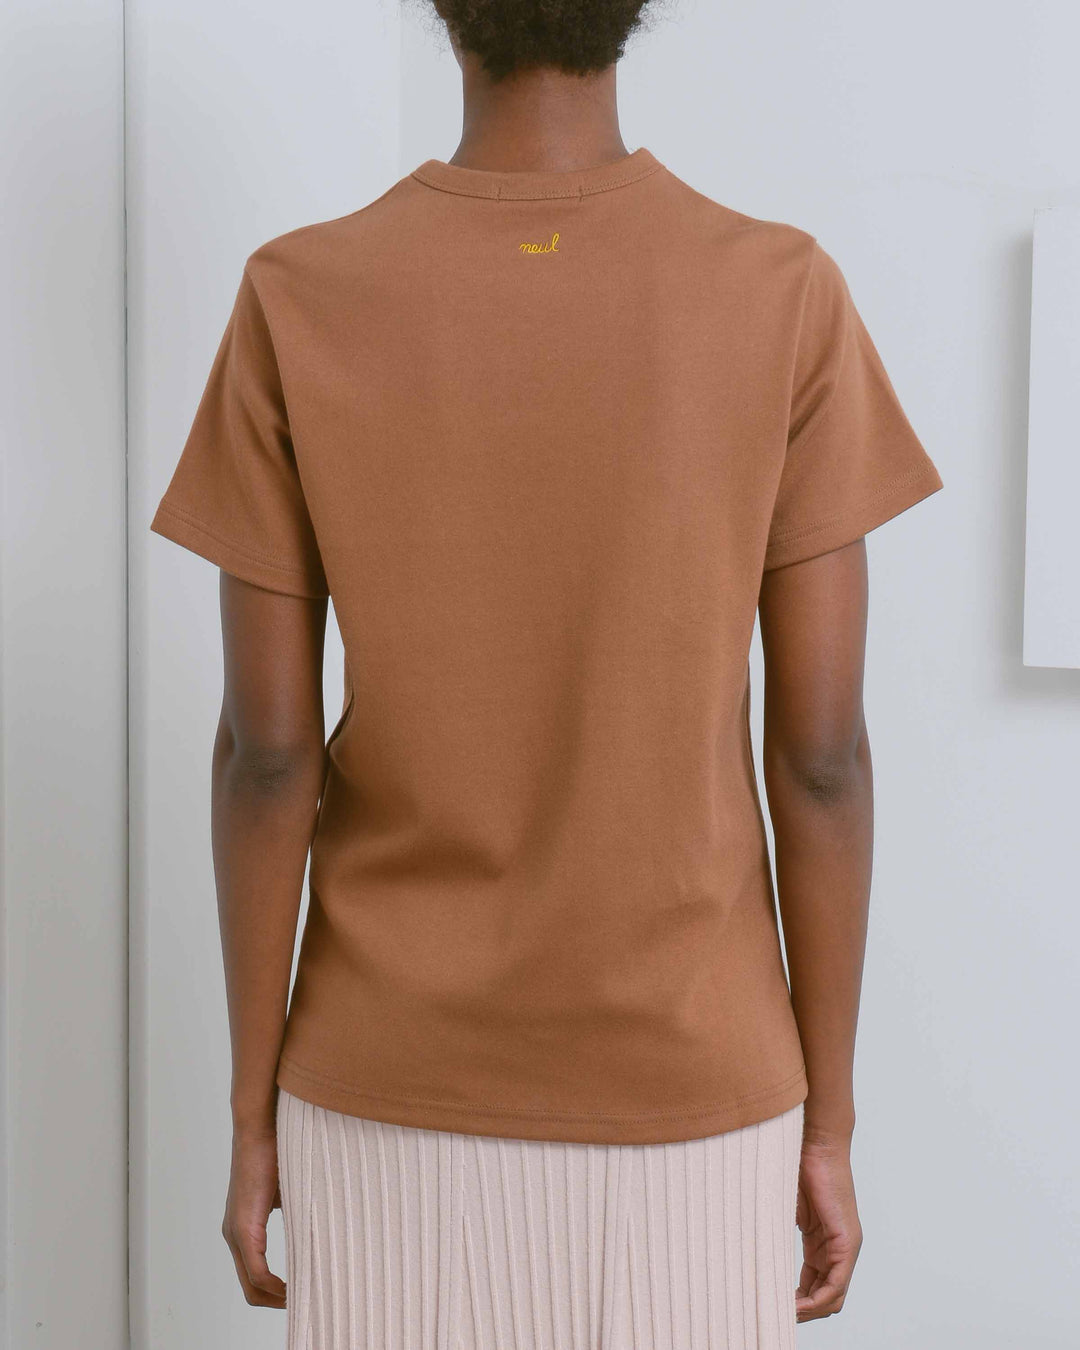 Toffee Inapsquare Collaboration T-Shirt